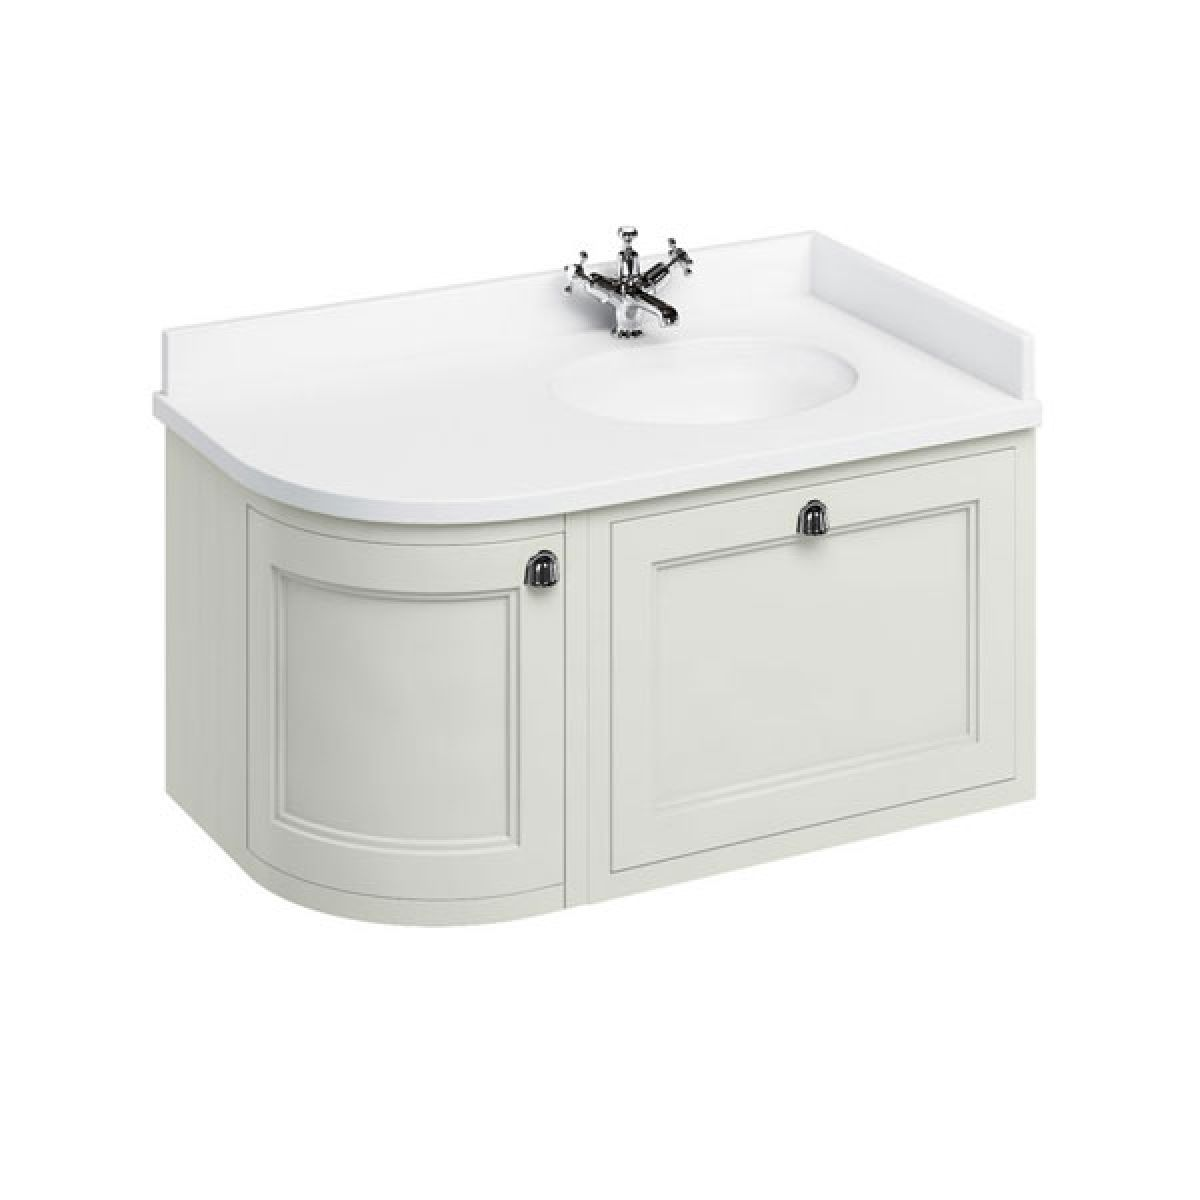 Burlington Sand Wall Hung Curved Right Hand Vanity Unit 1000mm (White)